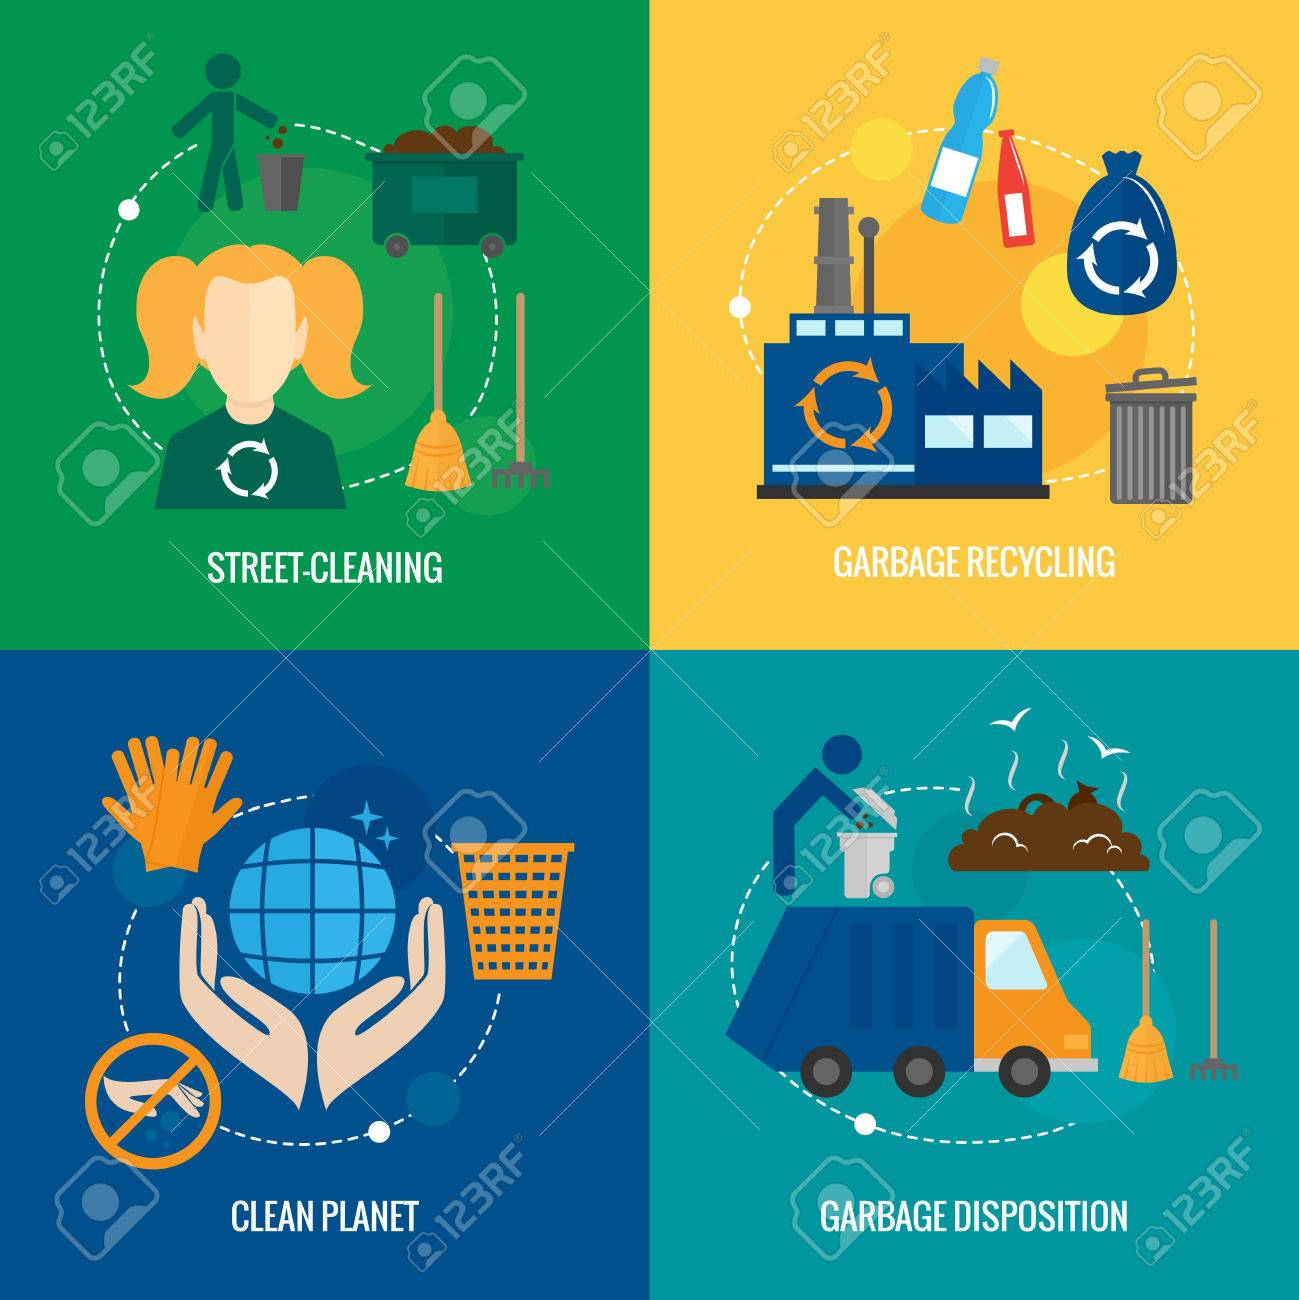 Garbage disposition street cleaning recycling icons set isolated vector illustration Stock Vector - 29453344